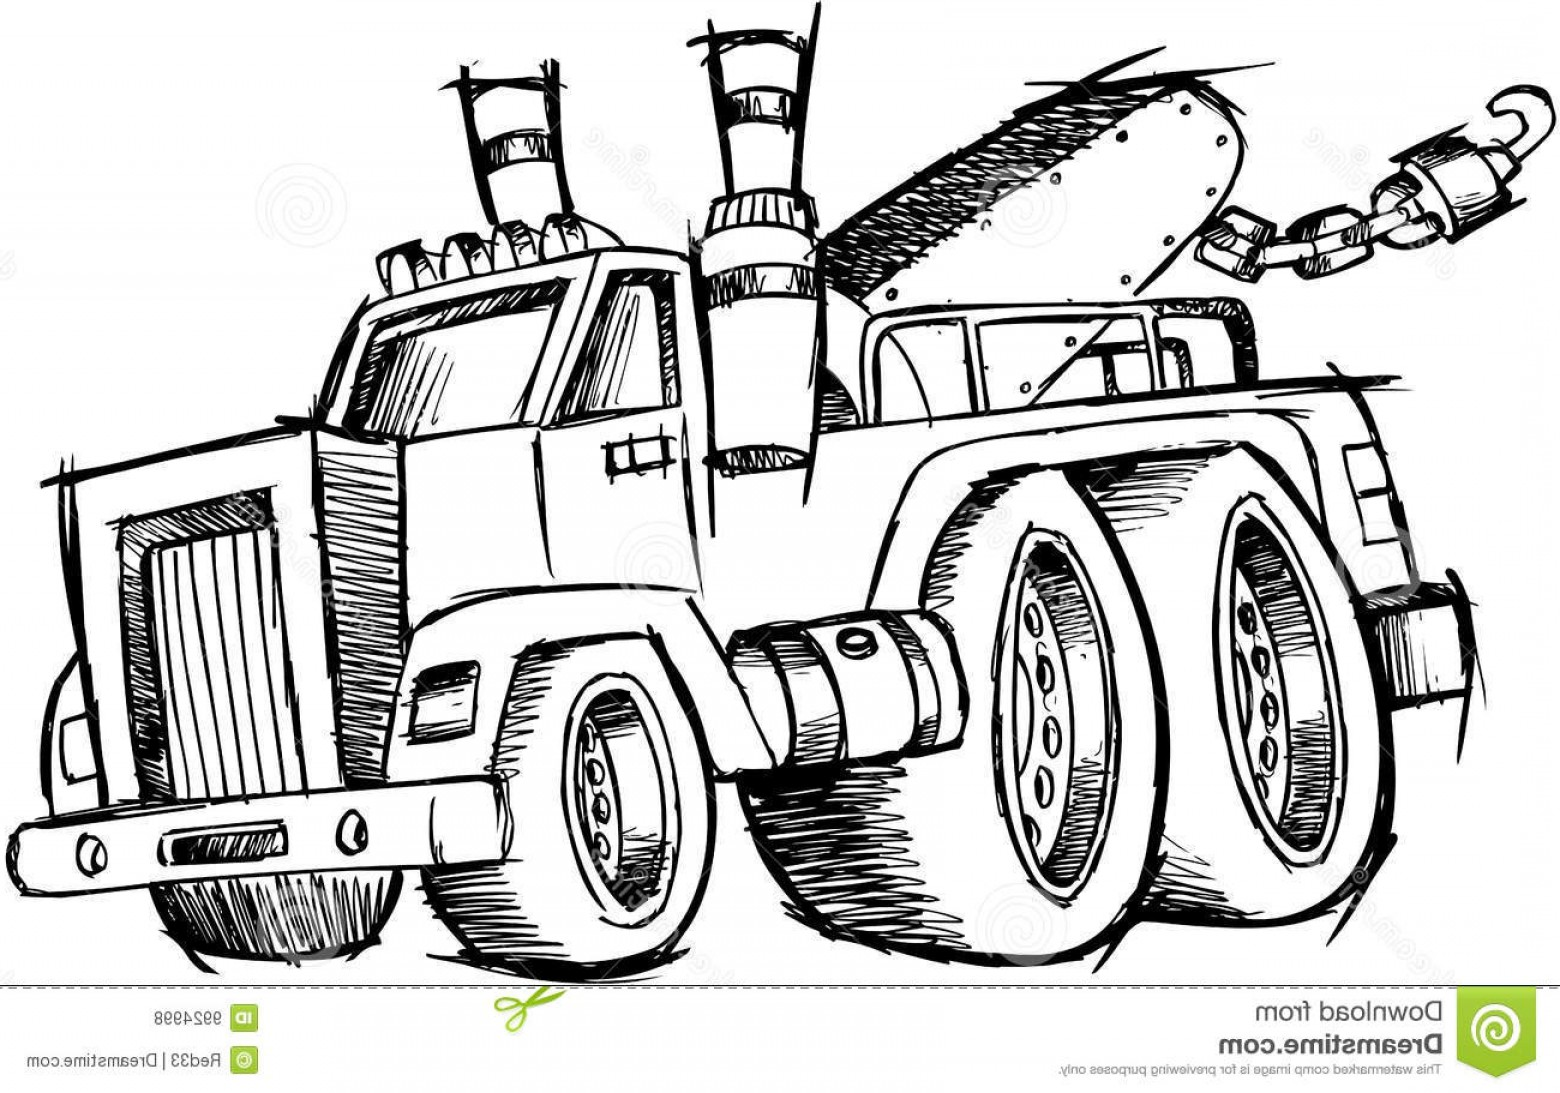 Towing Vector Clip Art: Royalty Free Stock Photos Sketchy Tow Truck Vector Image